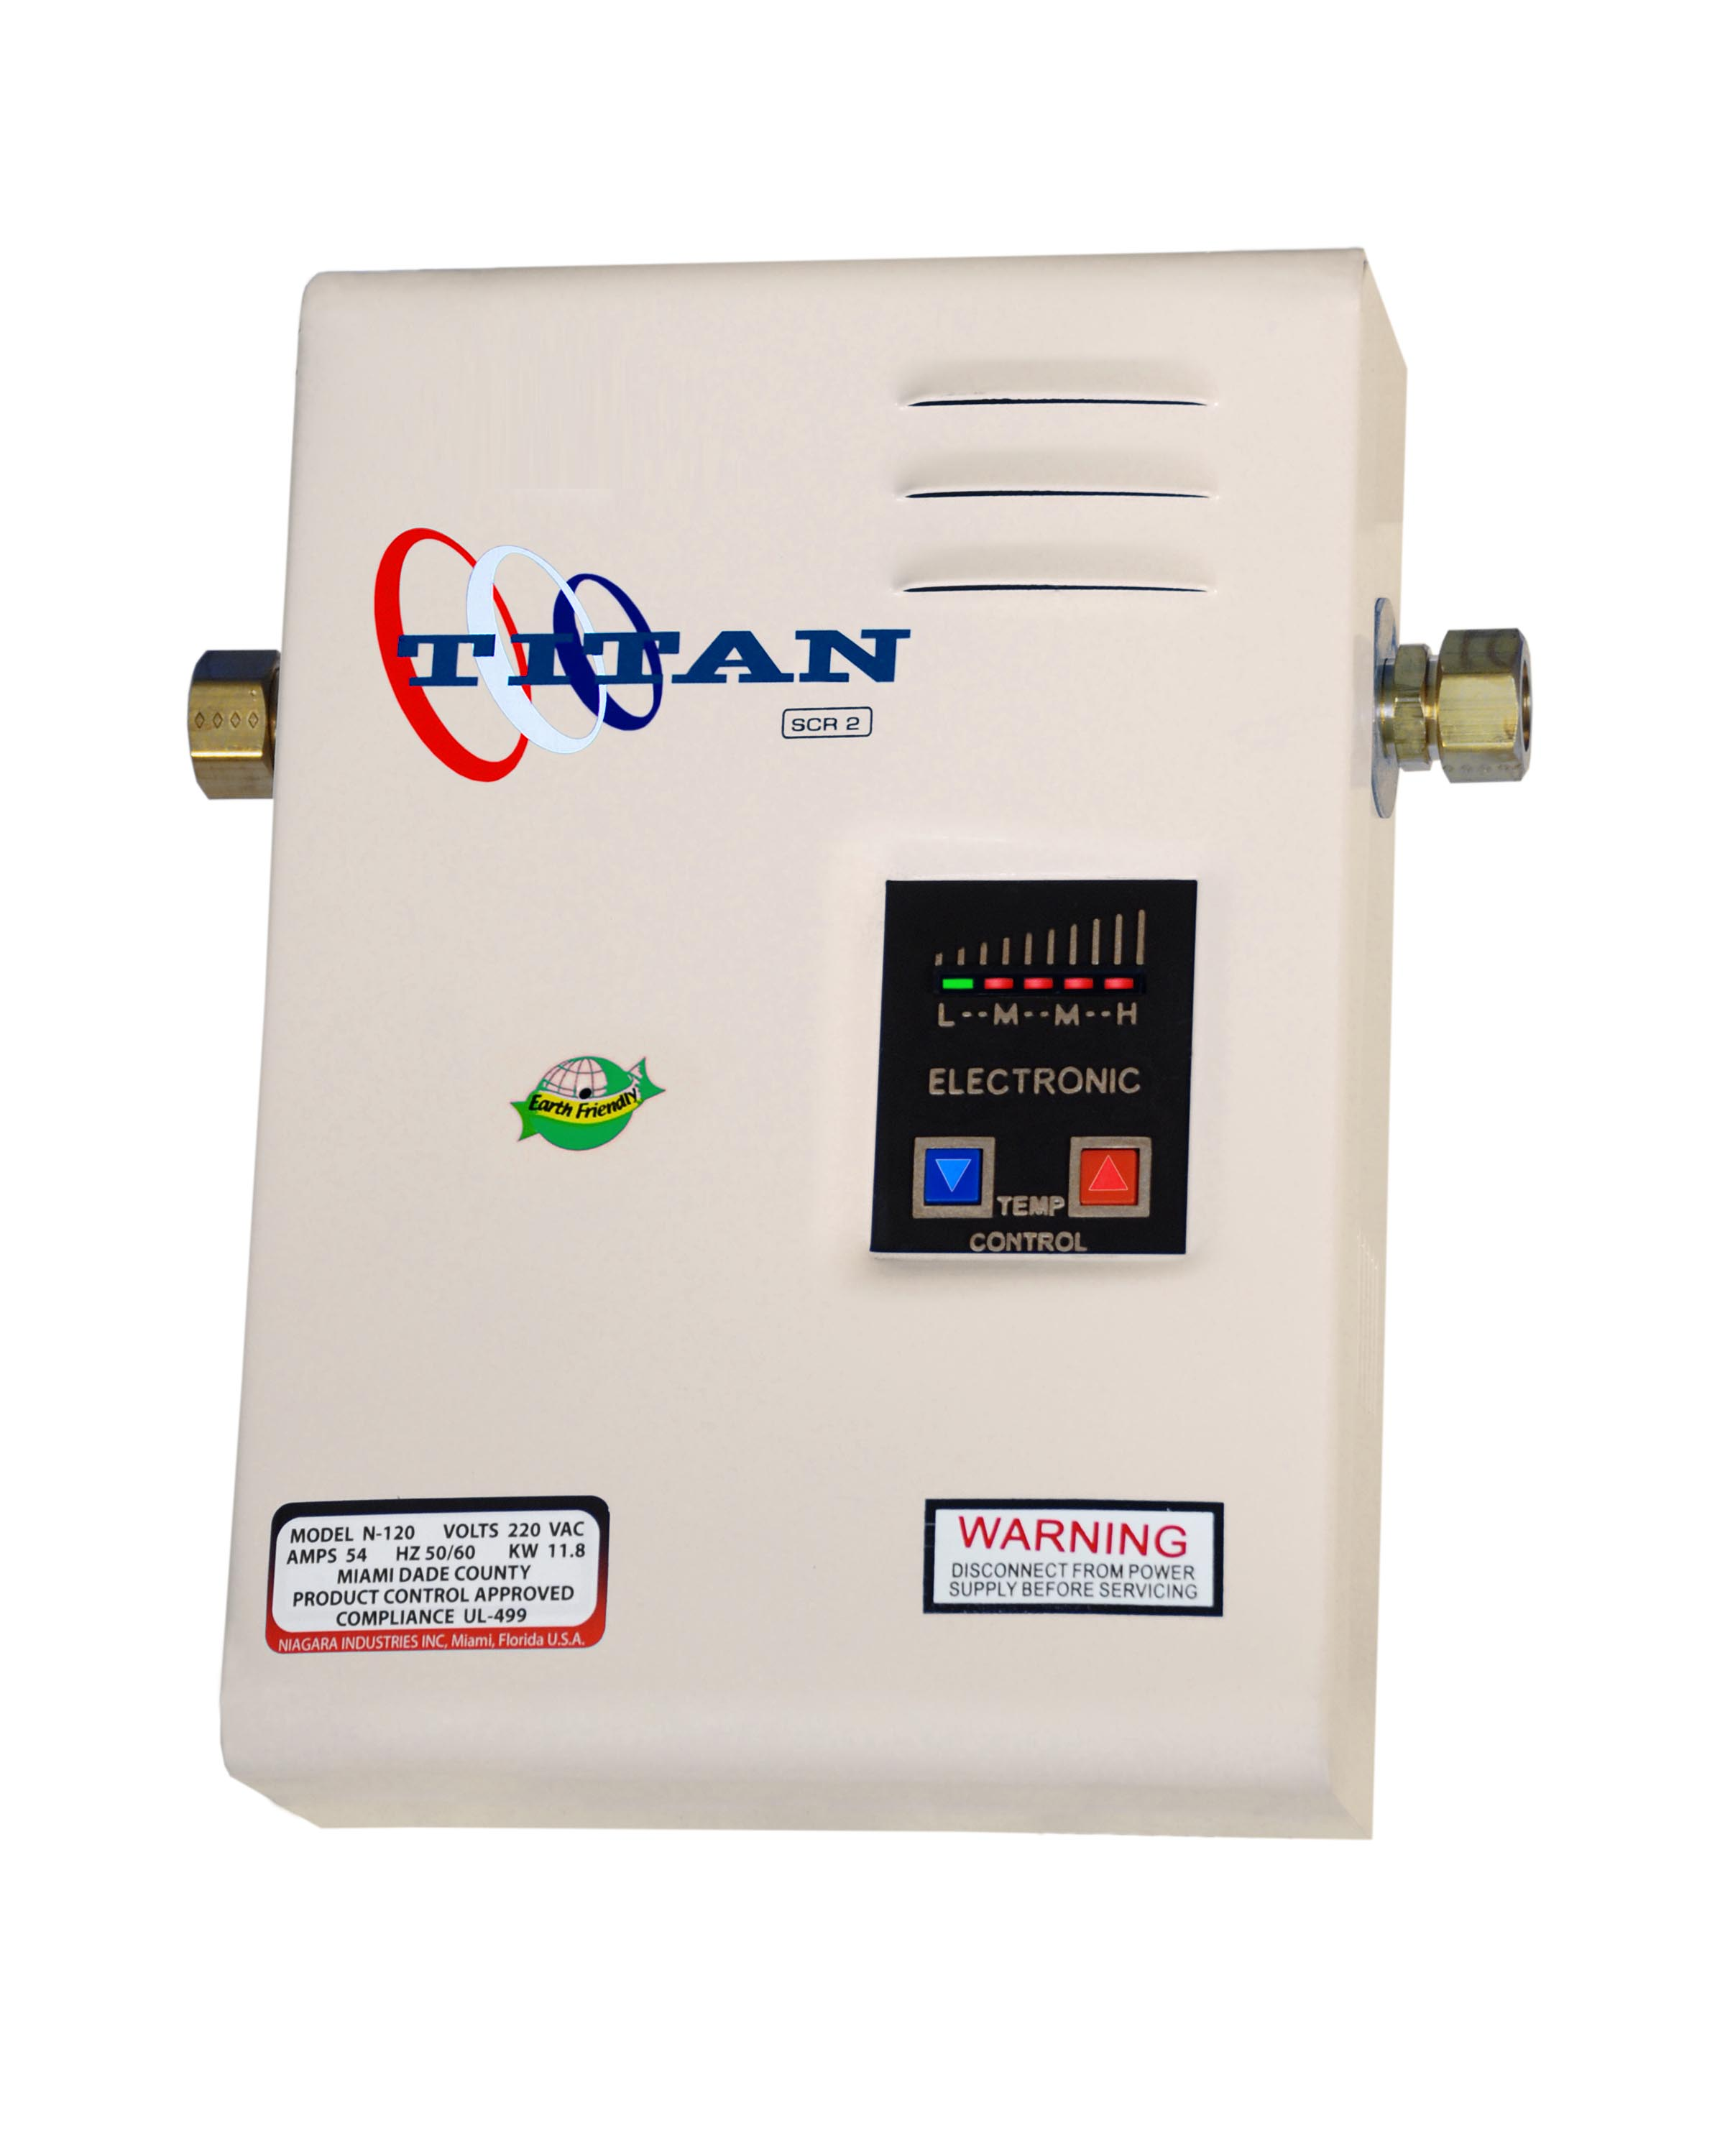 Titan Scr2 Electronic Digital Tankless Water Heater 120 Volt Thermostat Wiring Diagram